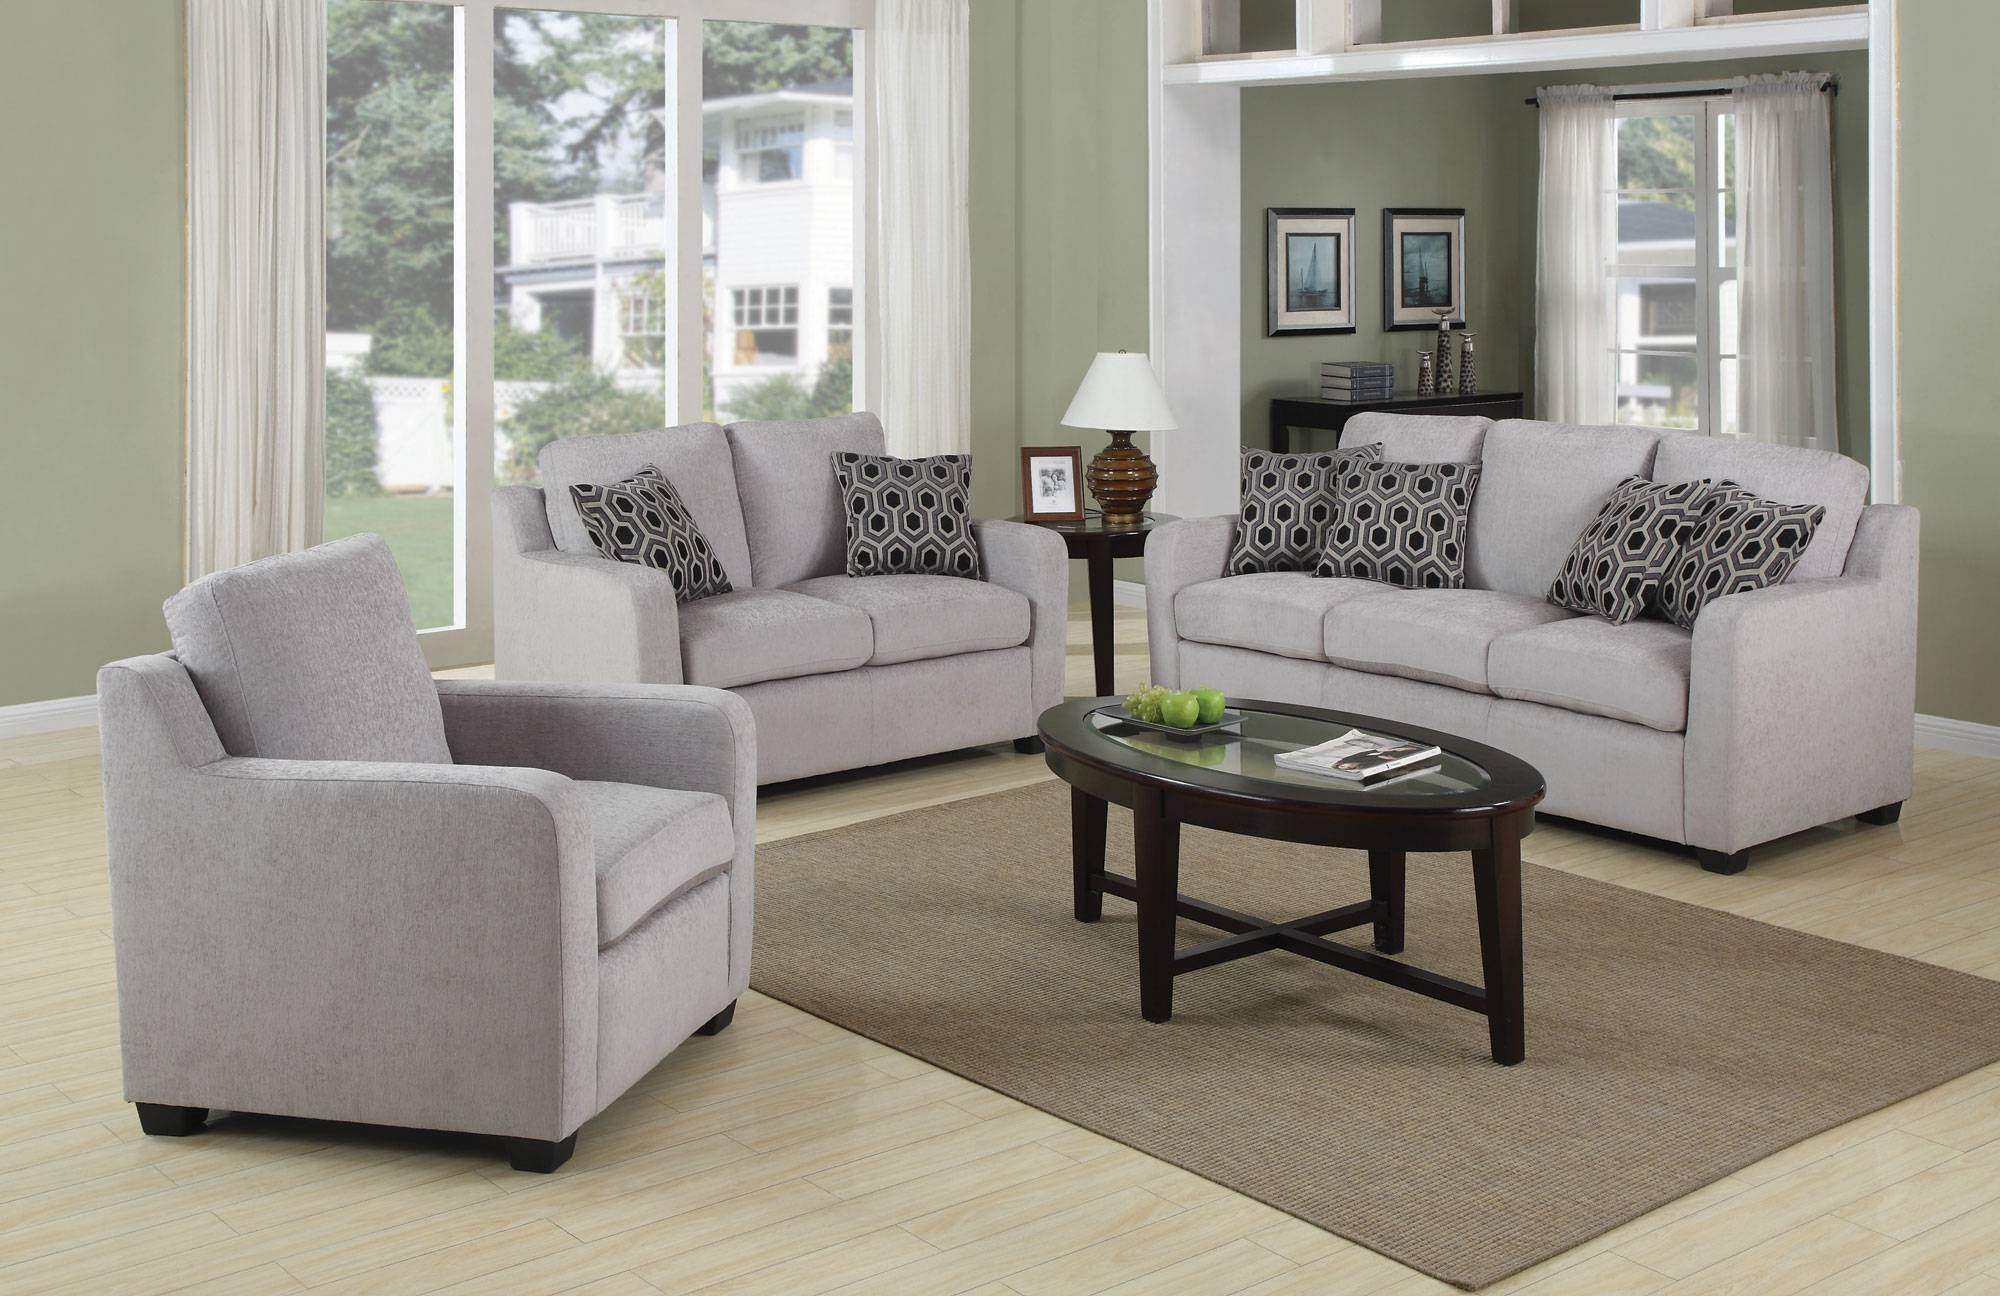 Furniture: Amazing Set Of Chairs For Living Room 5 Piece Living regarding Living Room Sofa Chairs (Image 6 of 15)